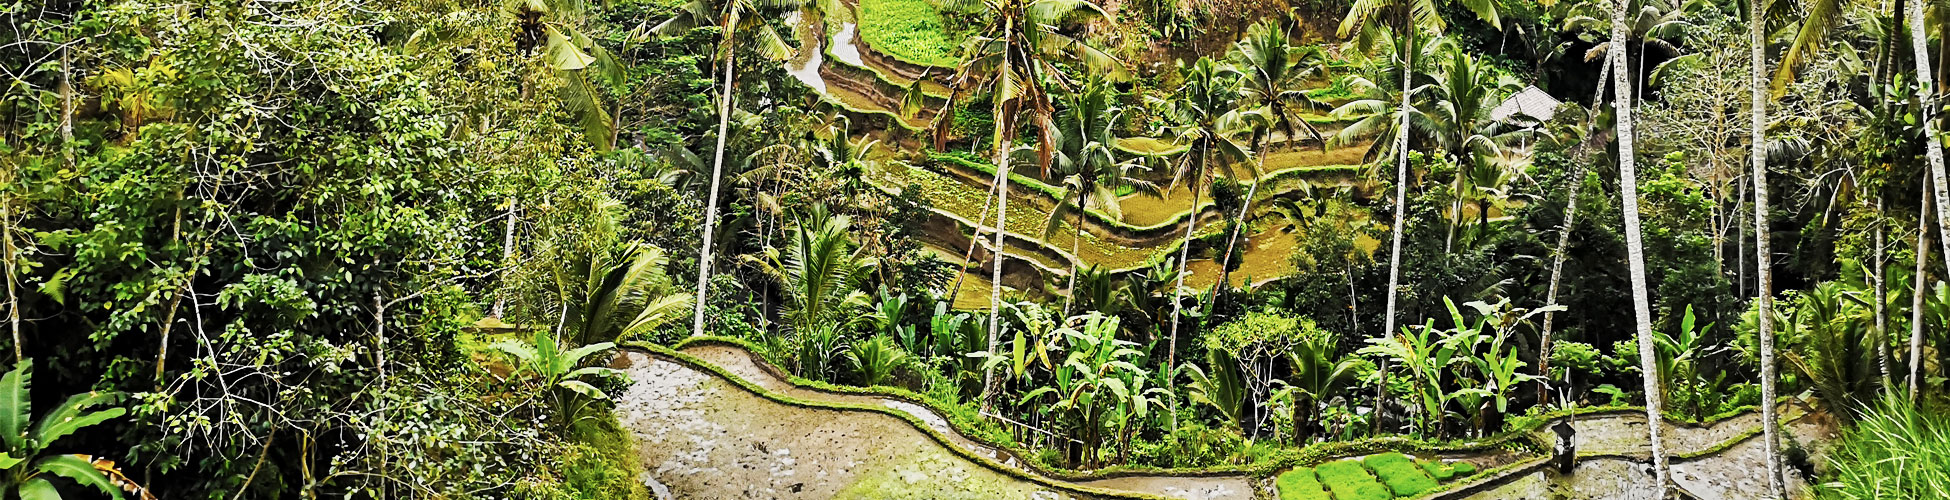 UBUD IN THE HEART OF BALI